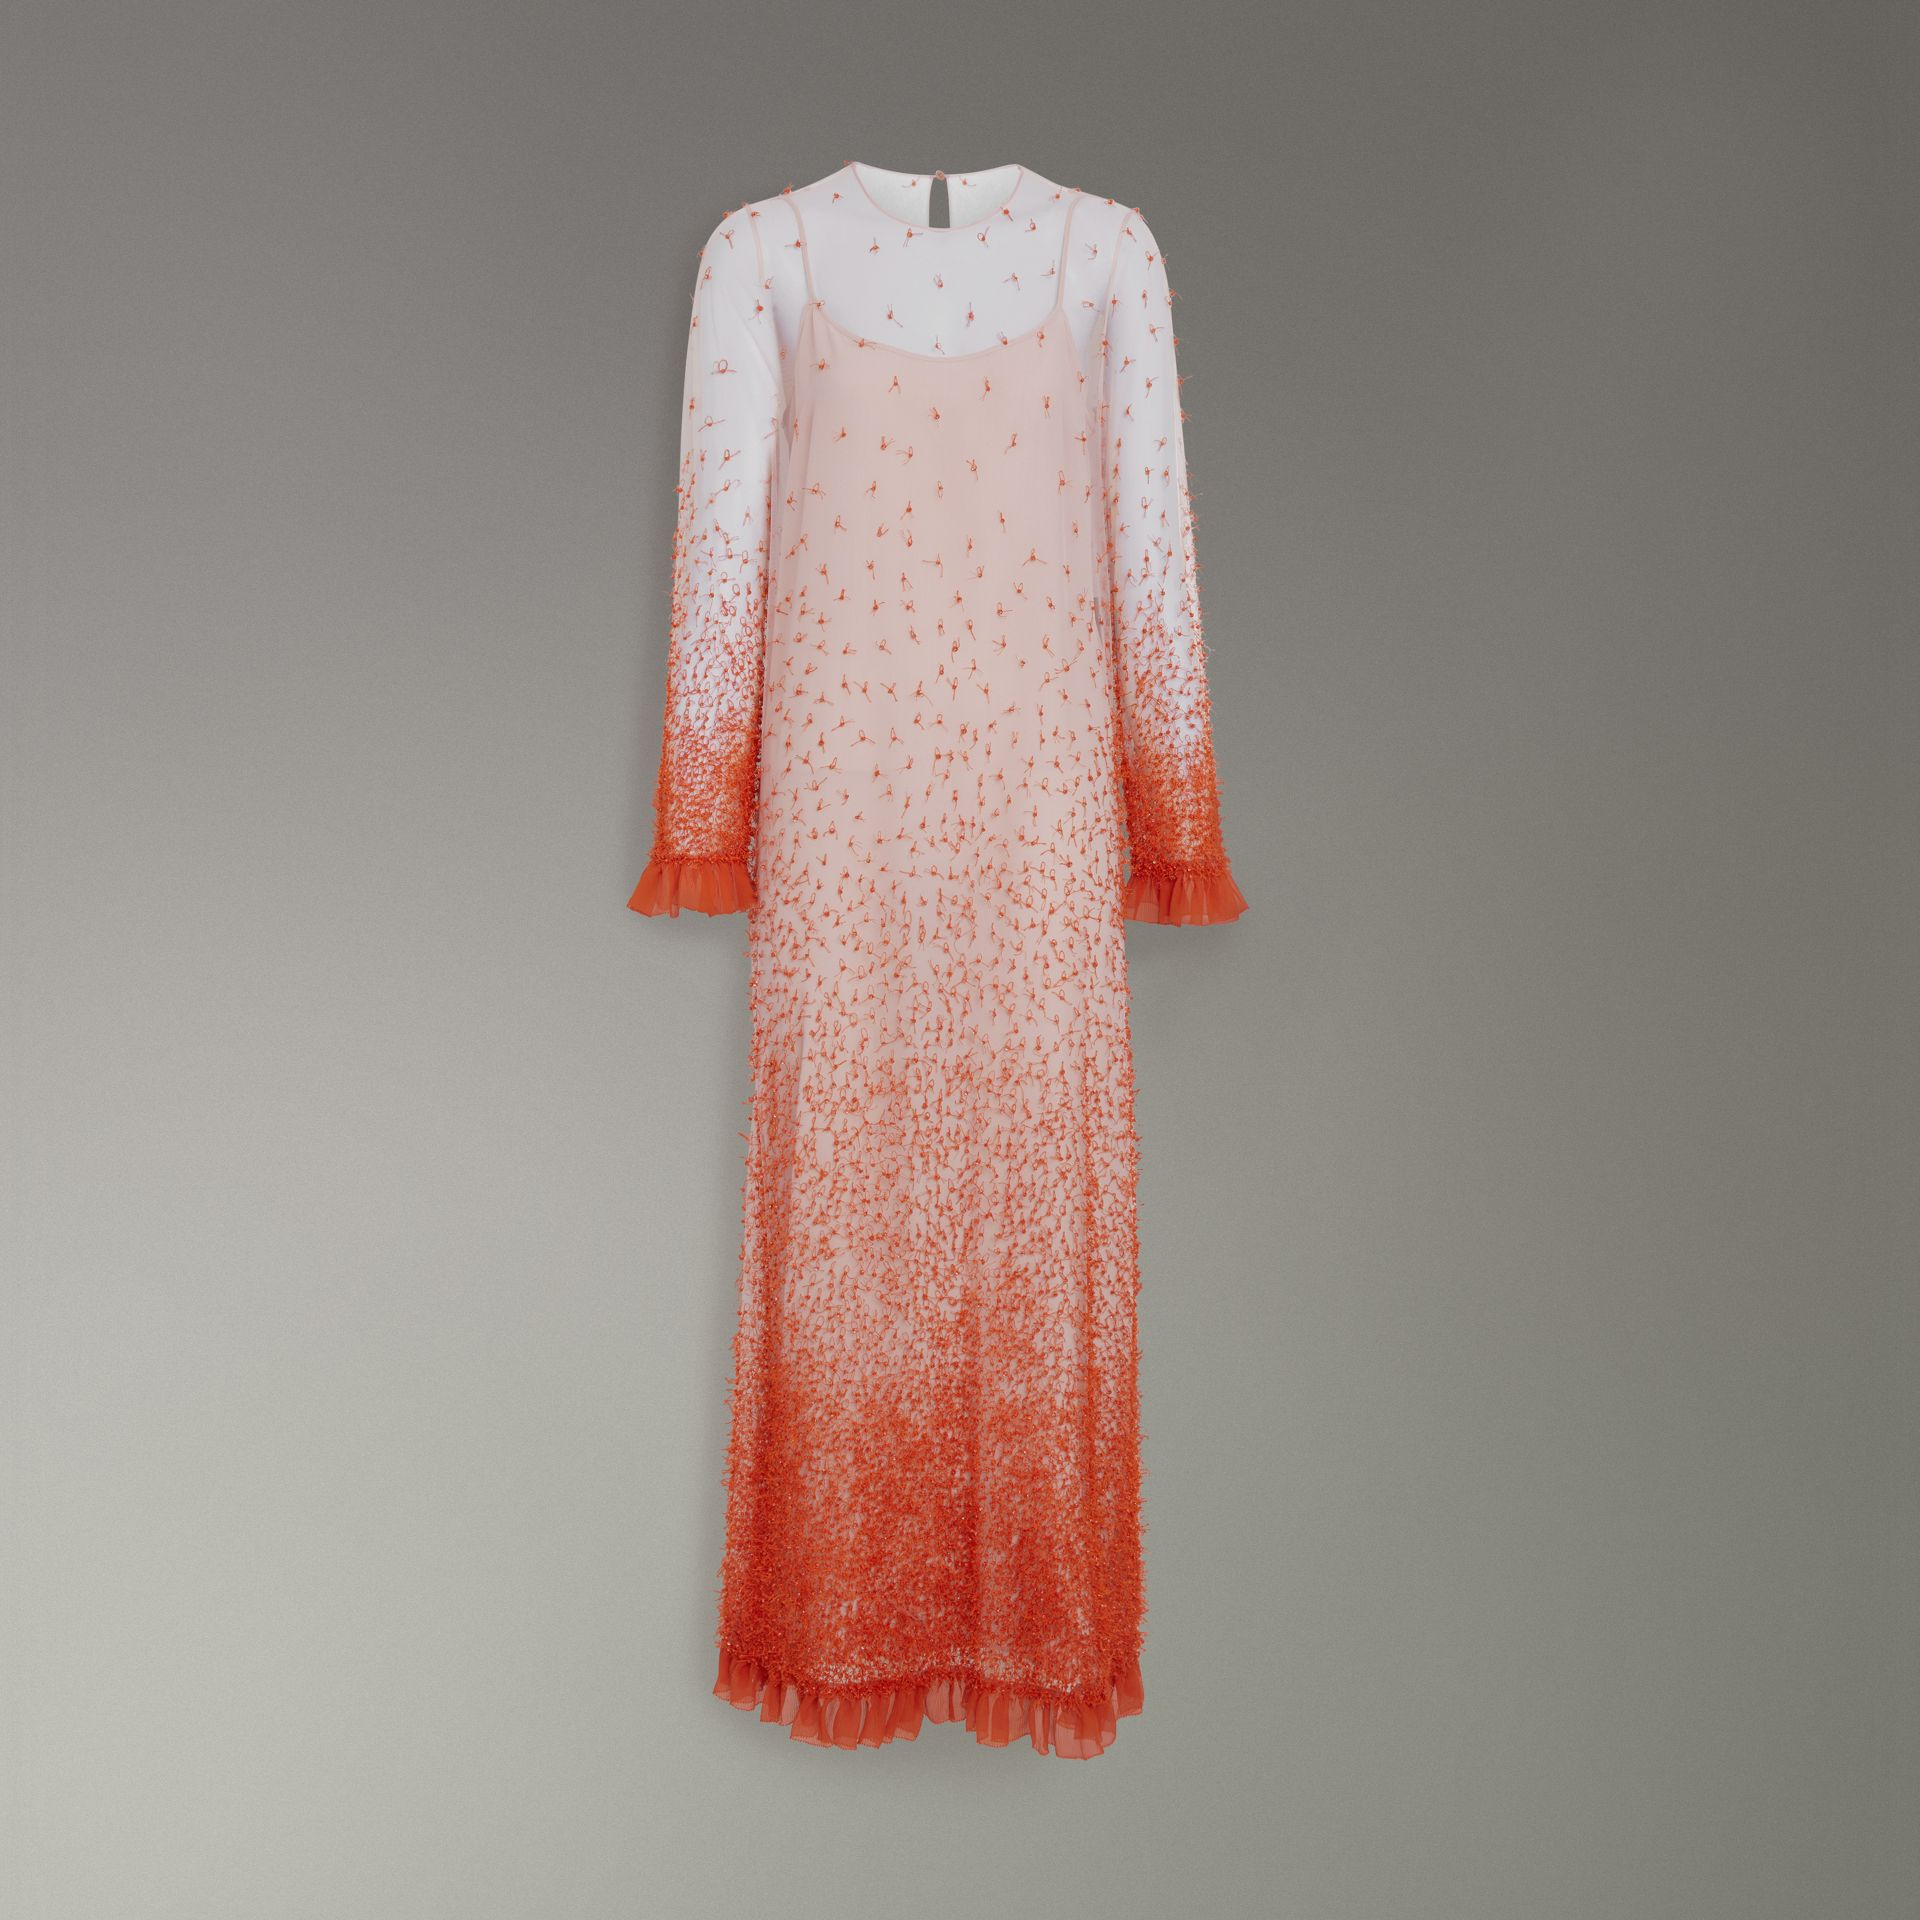 Dégradé Hand-beaded Crepon Dress in Coral - Women | Burberry Singapore - gallery image 3